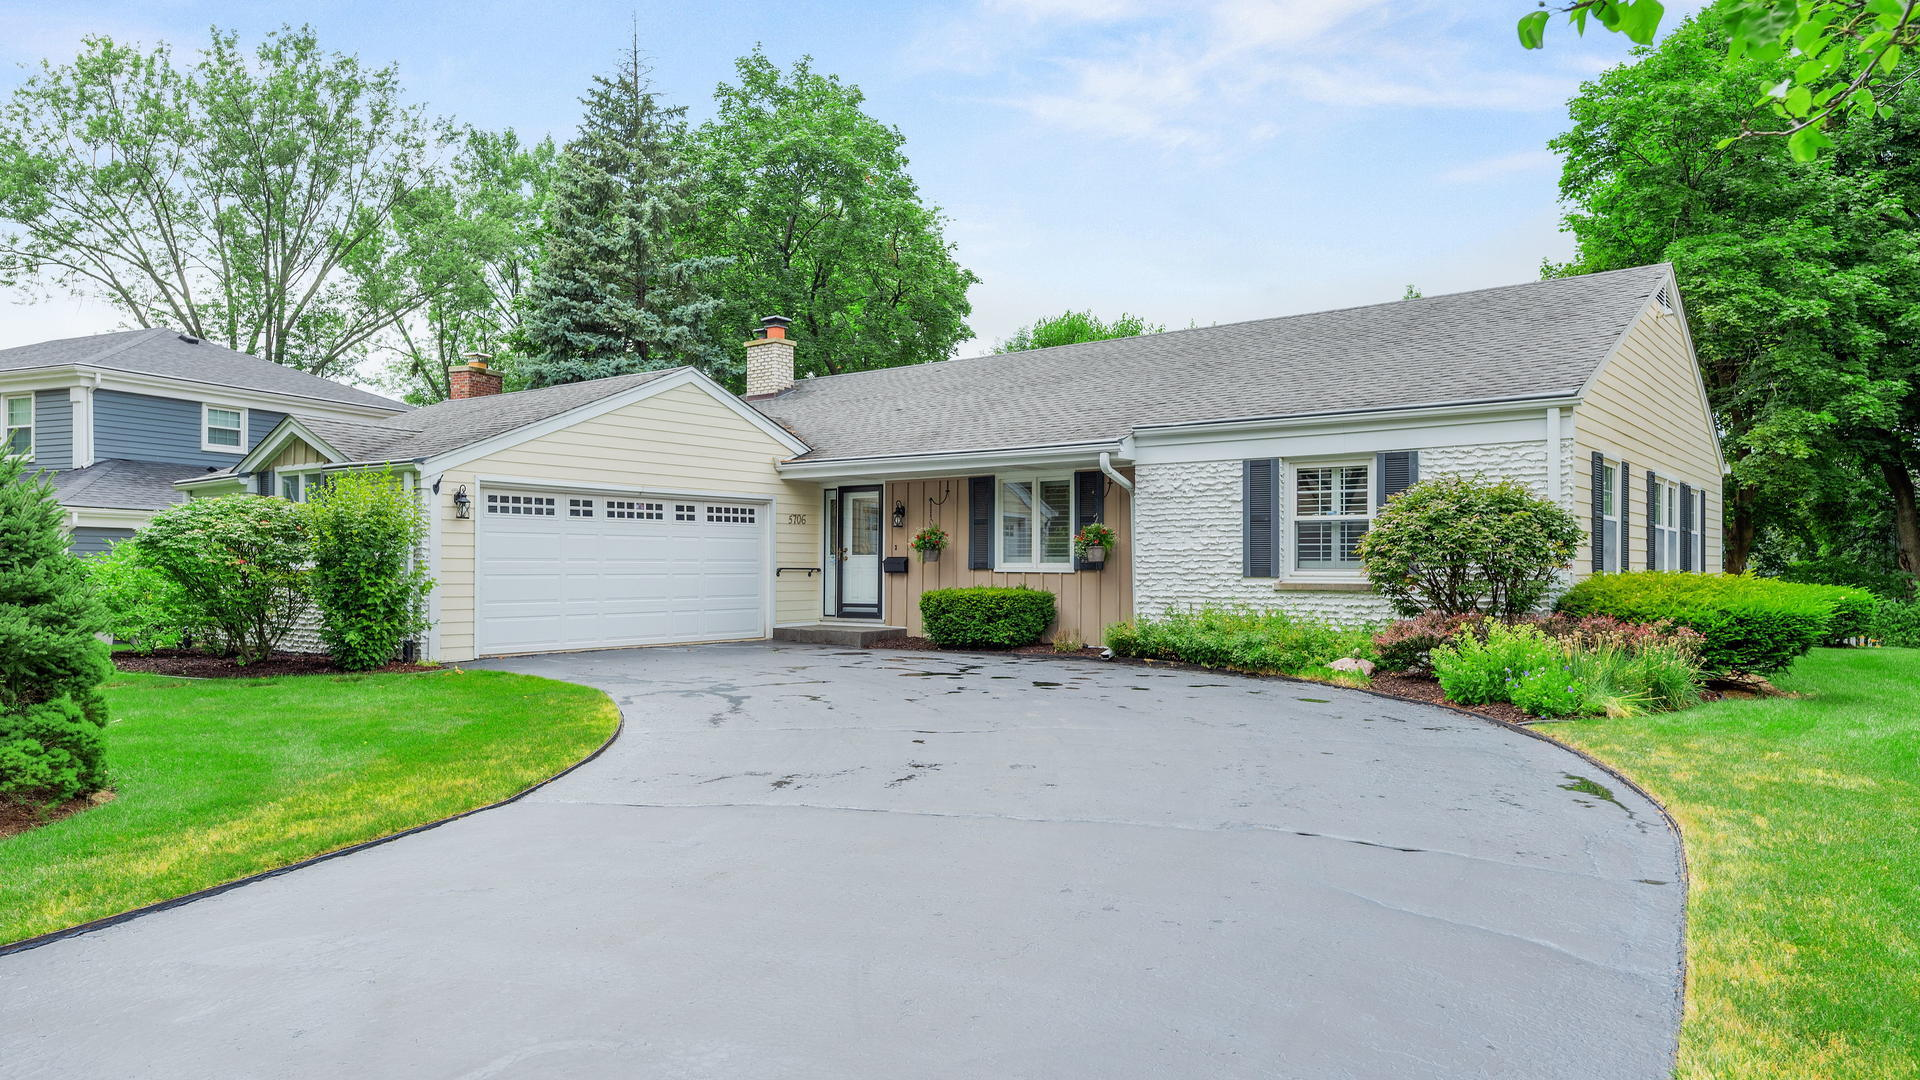 5706 Lawn Drive, Western Springs, Illinois